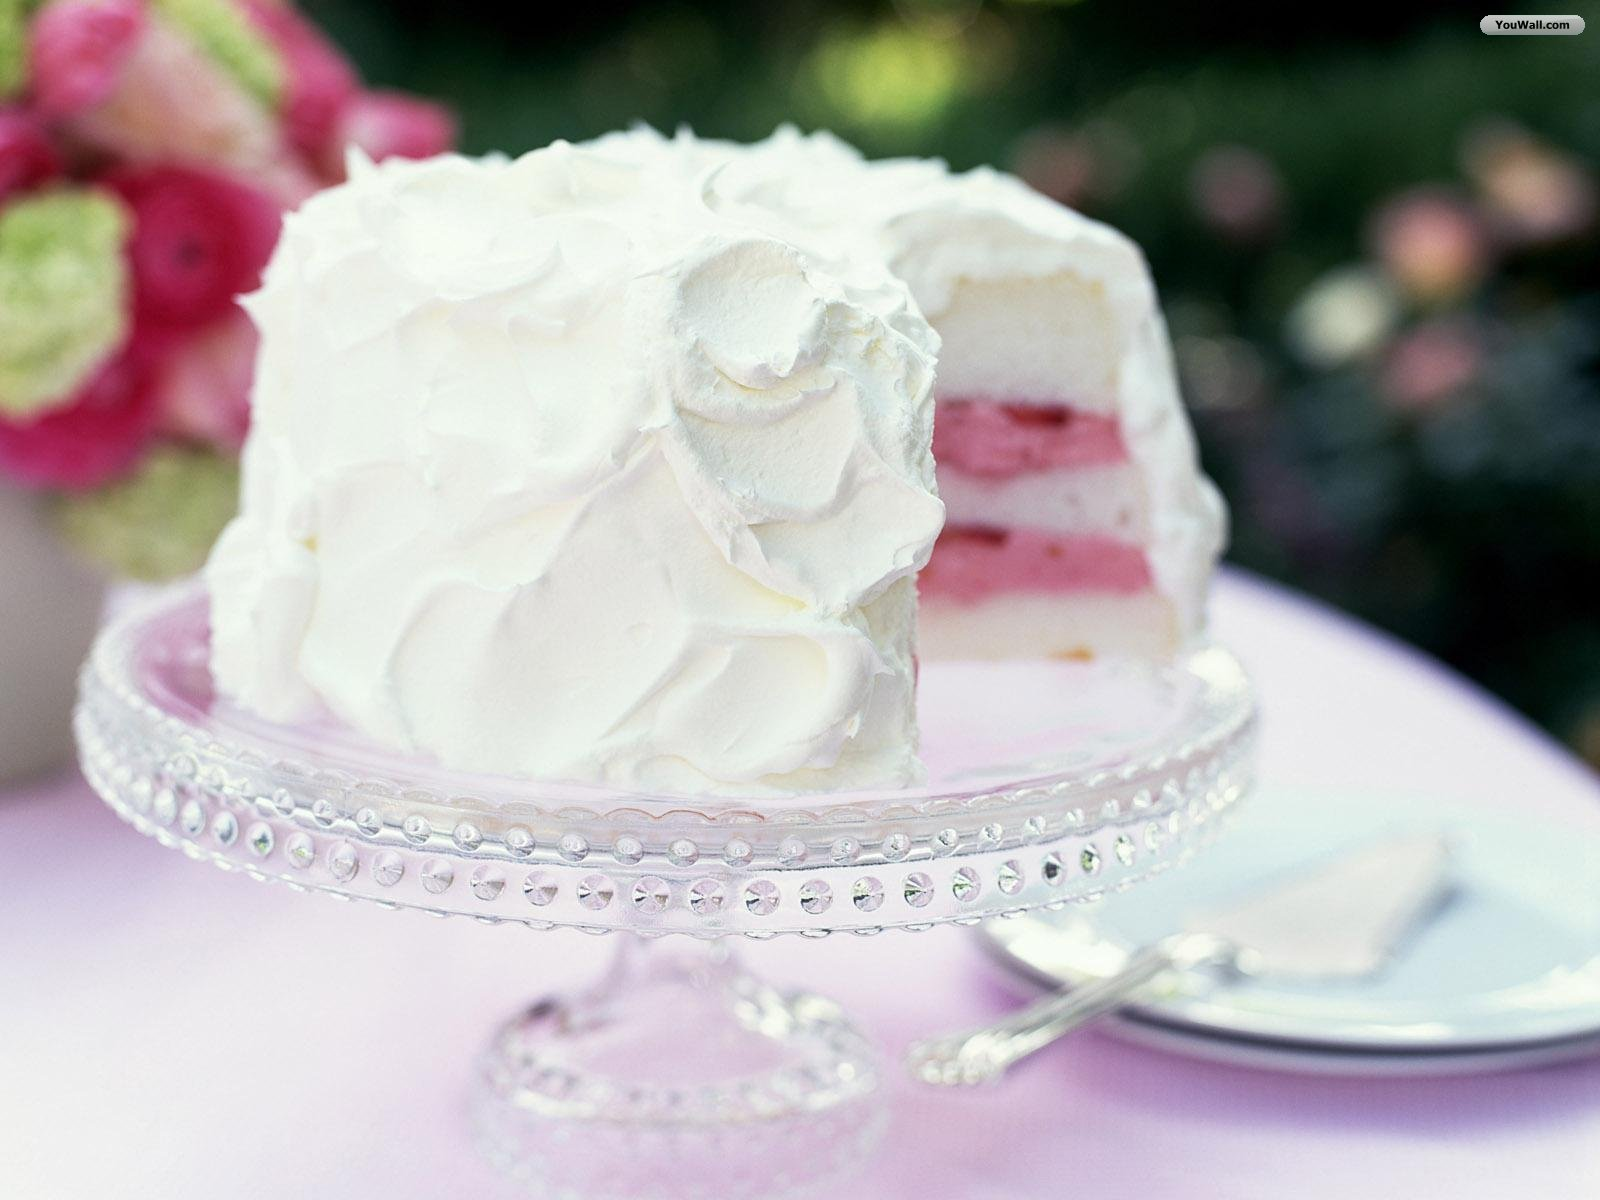 Download Delicious Cake Images : Cakes - Delicious Recipes Wallpaper (23444504) - Fanpop